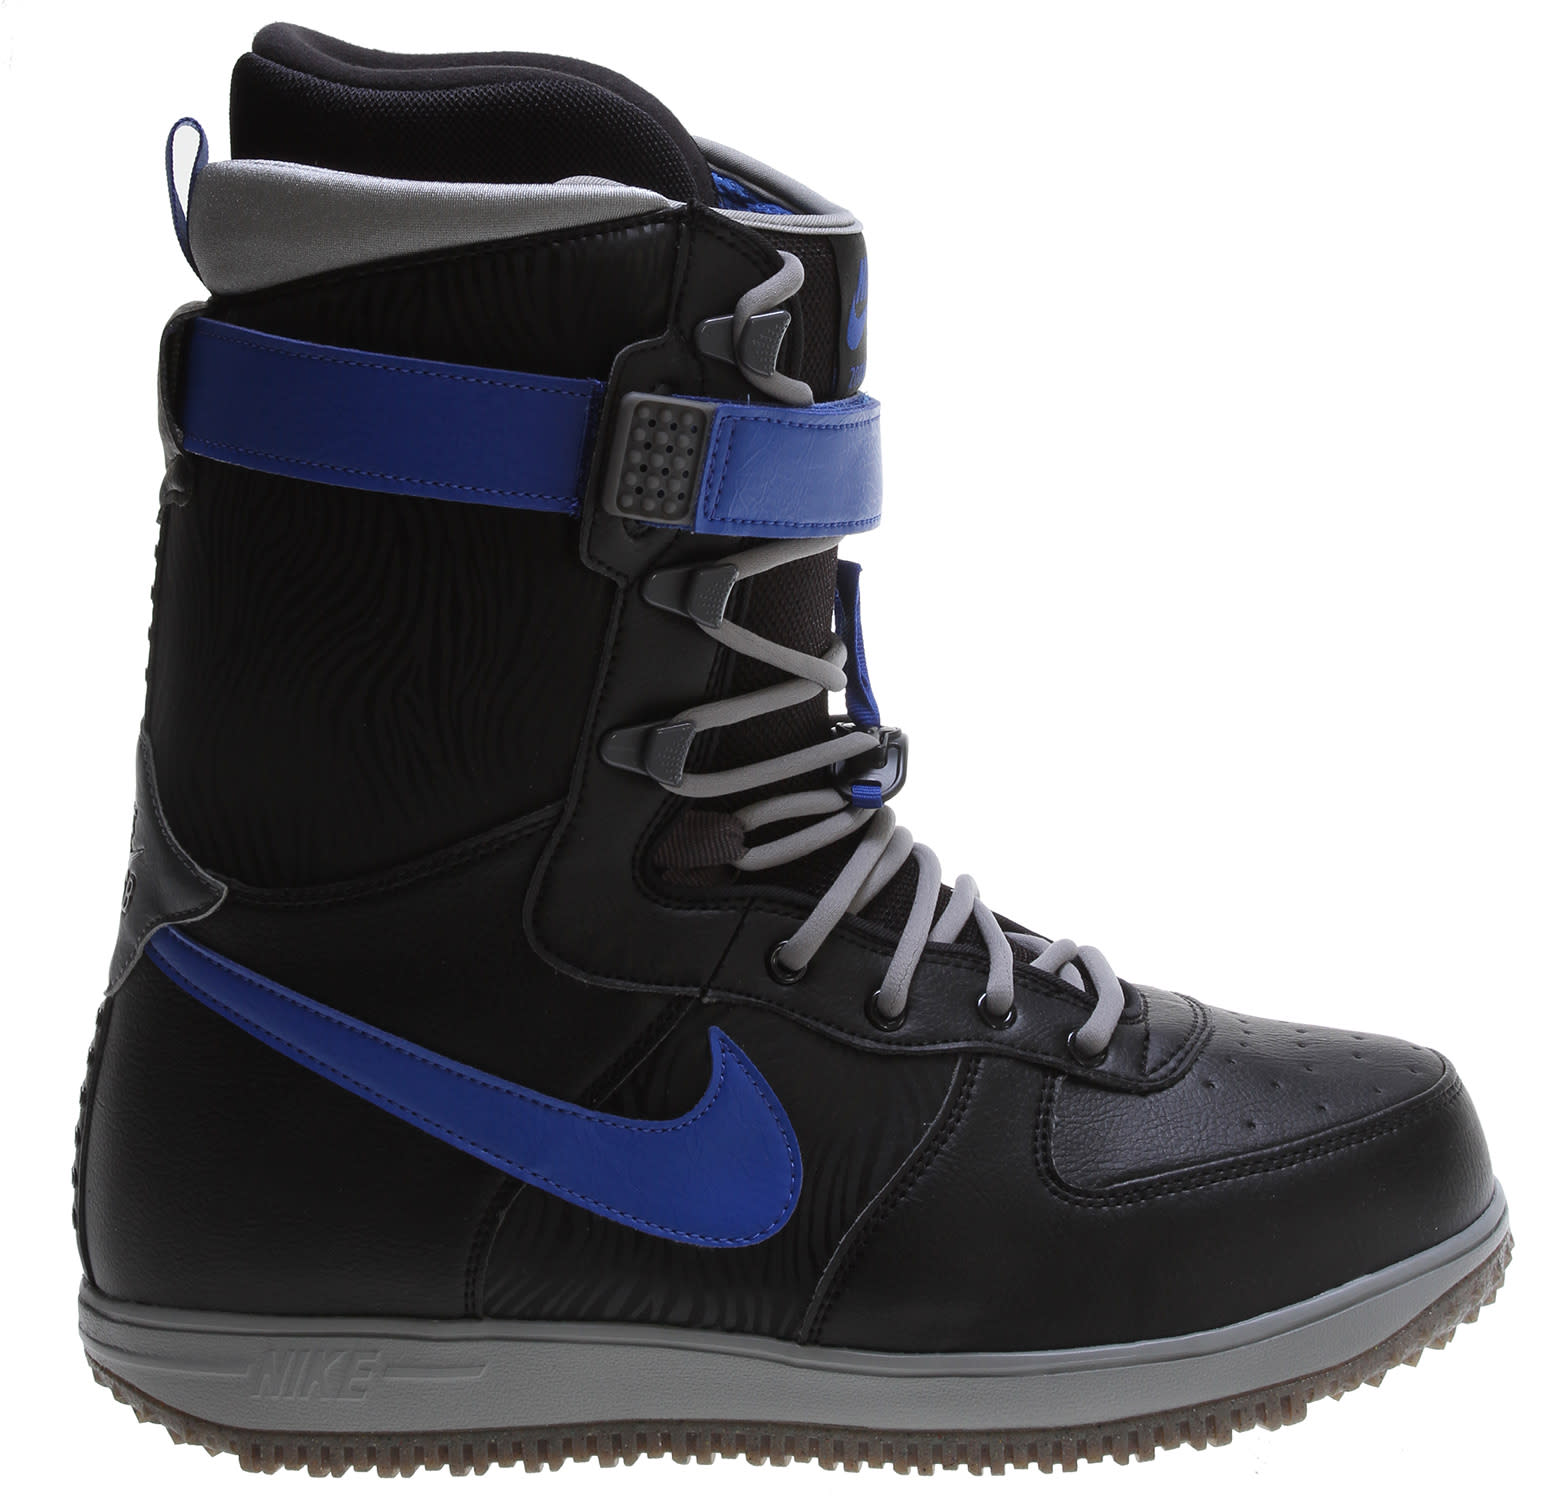 Nike Zoom Force 1 Snowboard Boots ... b910d1ac8